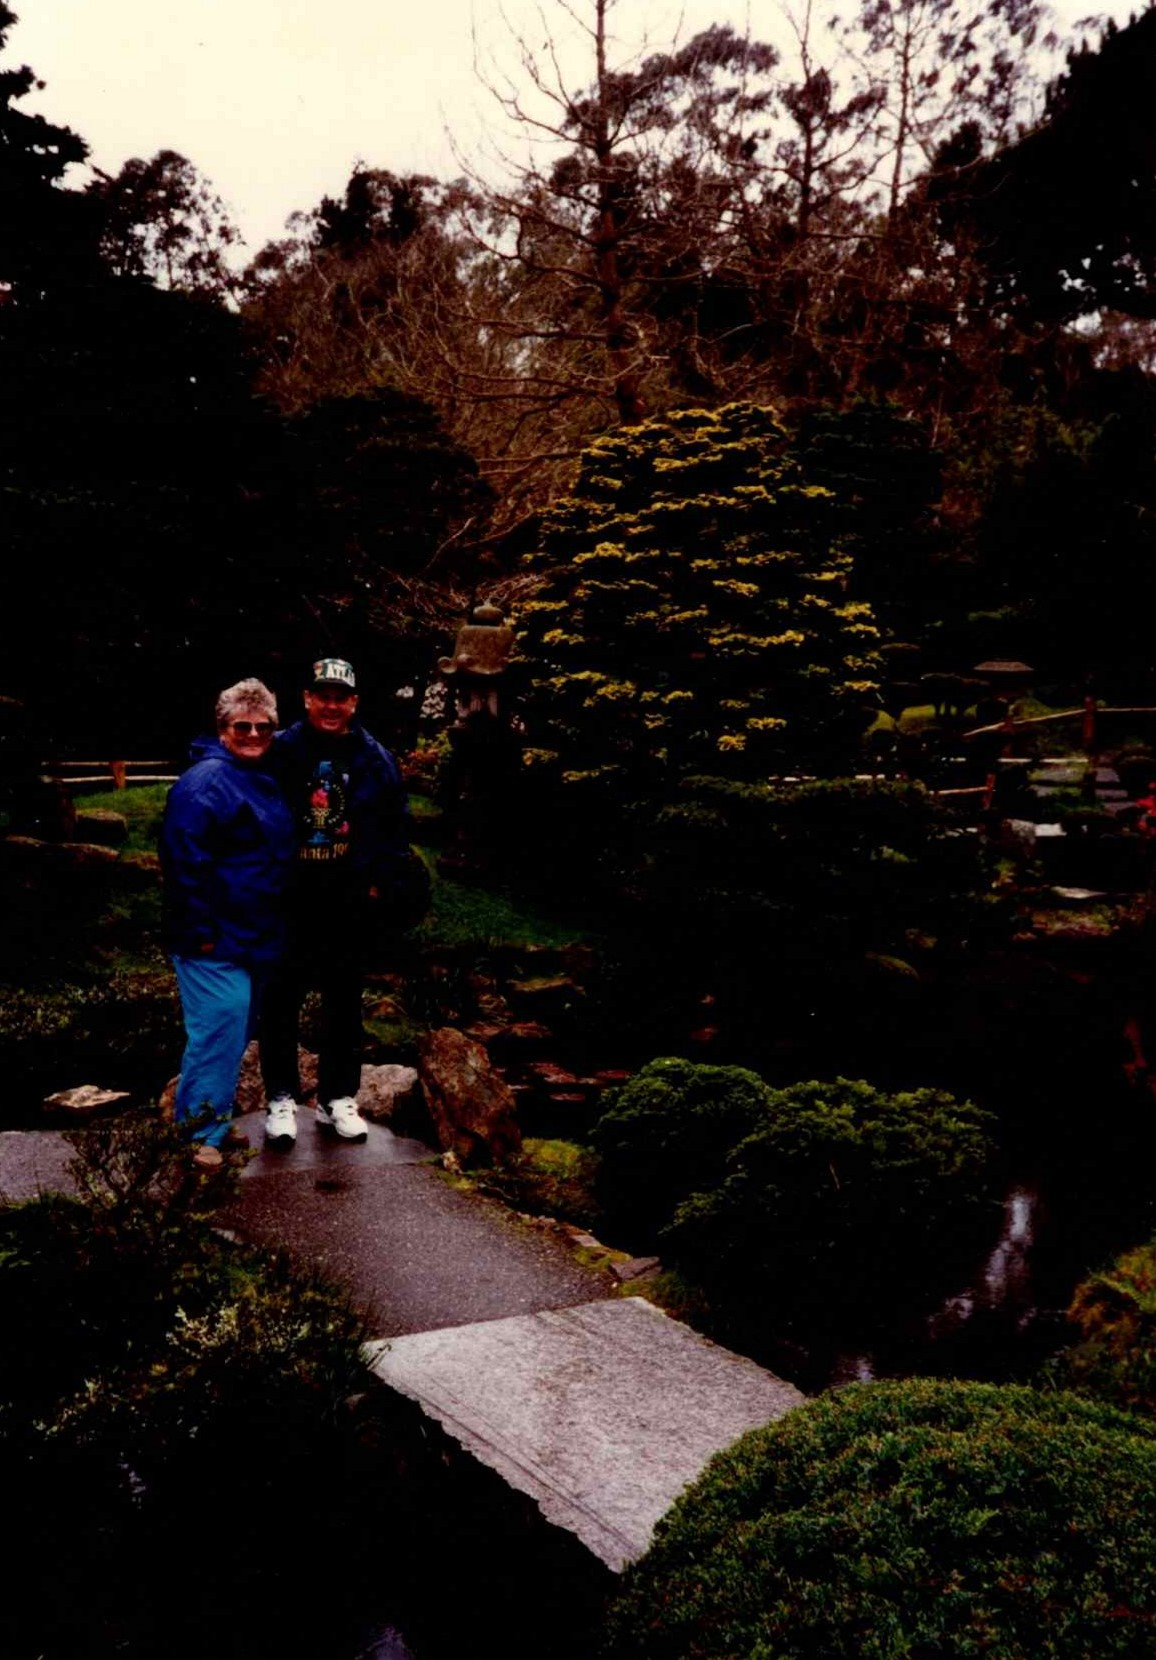 Together in the Beautiful Gardens